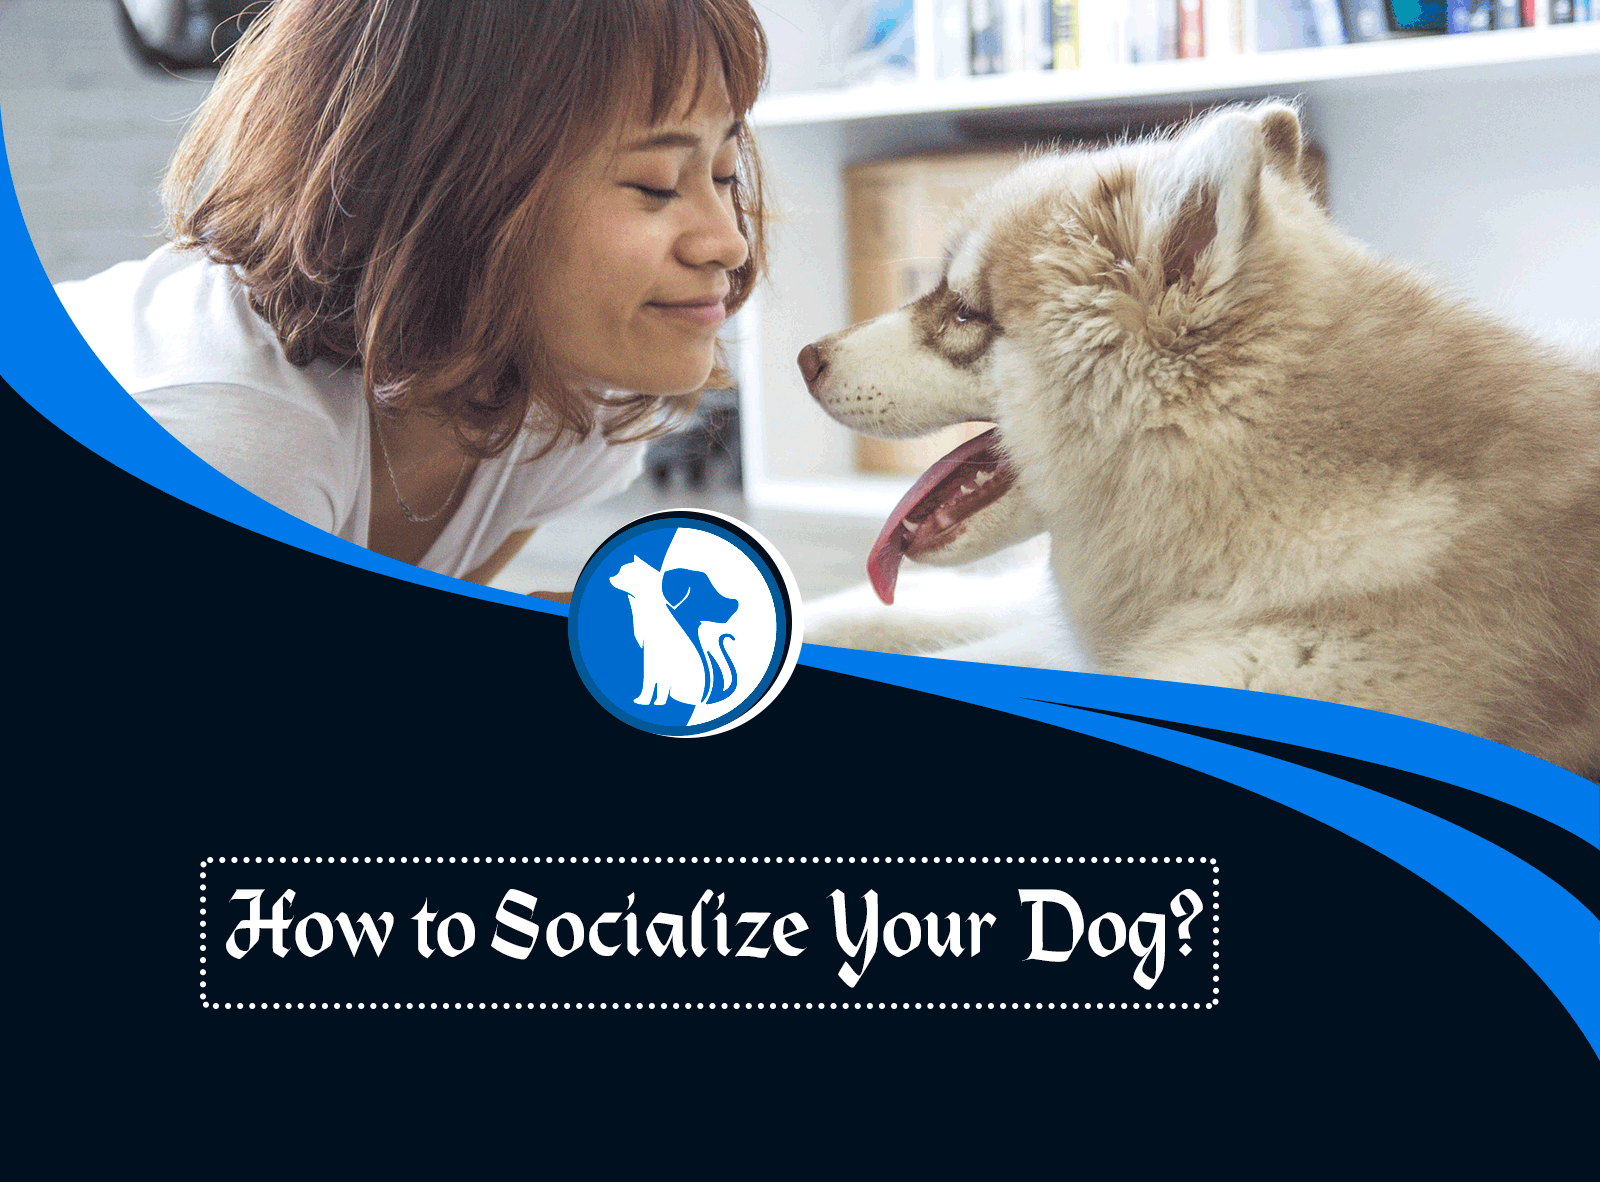 How to Socialize Your Dog?